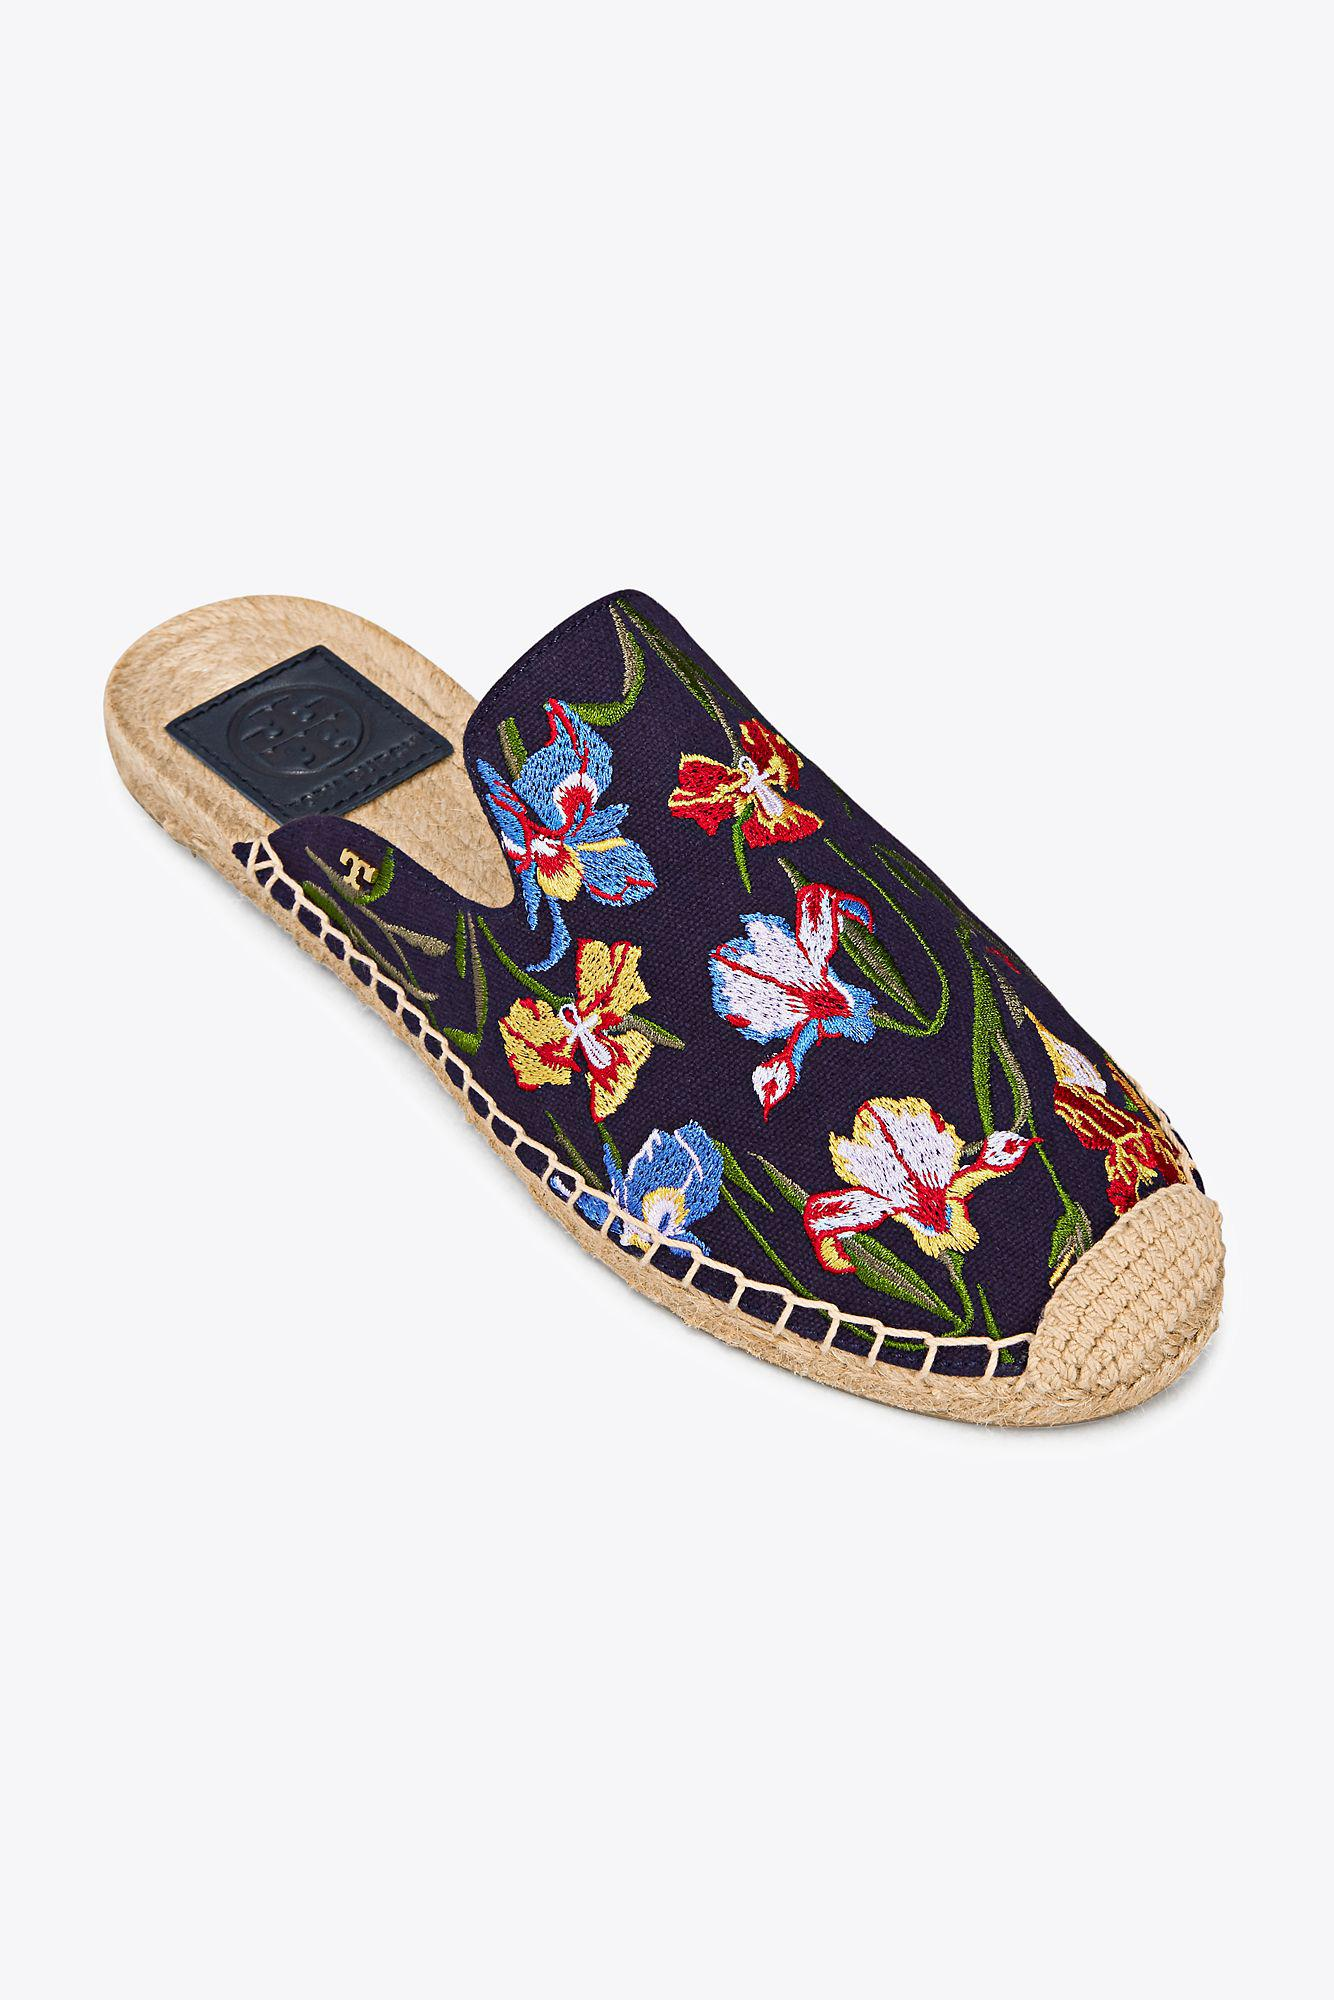 Max embroidered espadrille slides - Blue Tory Burch mitZg